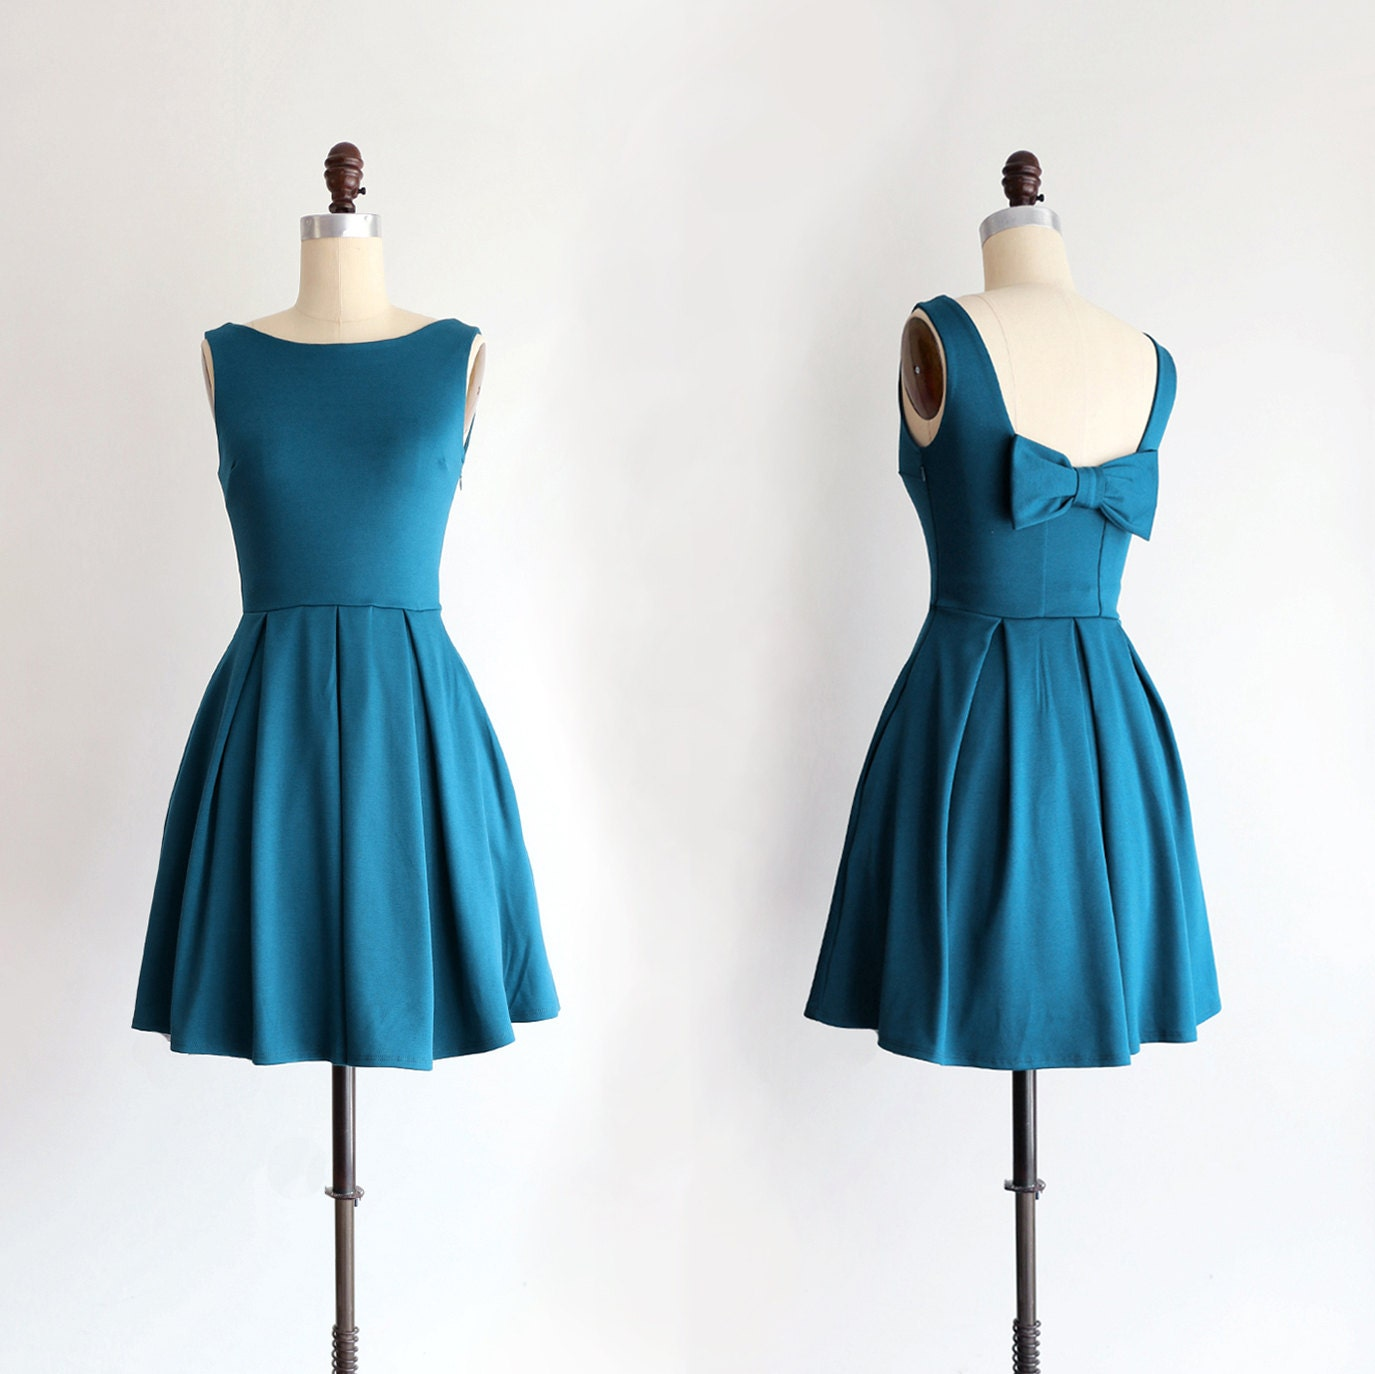 Pre order january teal bridesmaid dress with bow vintage zoom ombrellifo Image collections